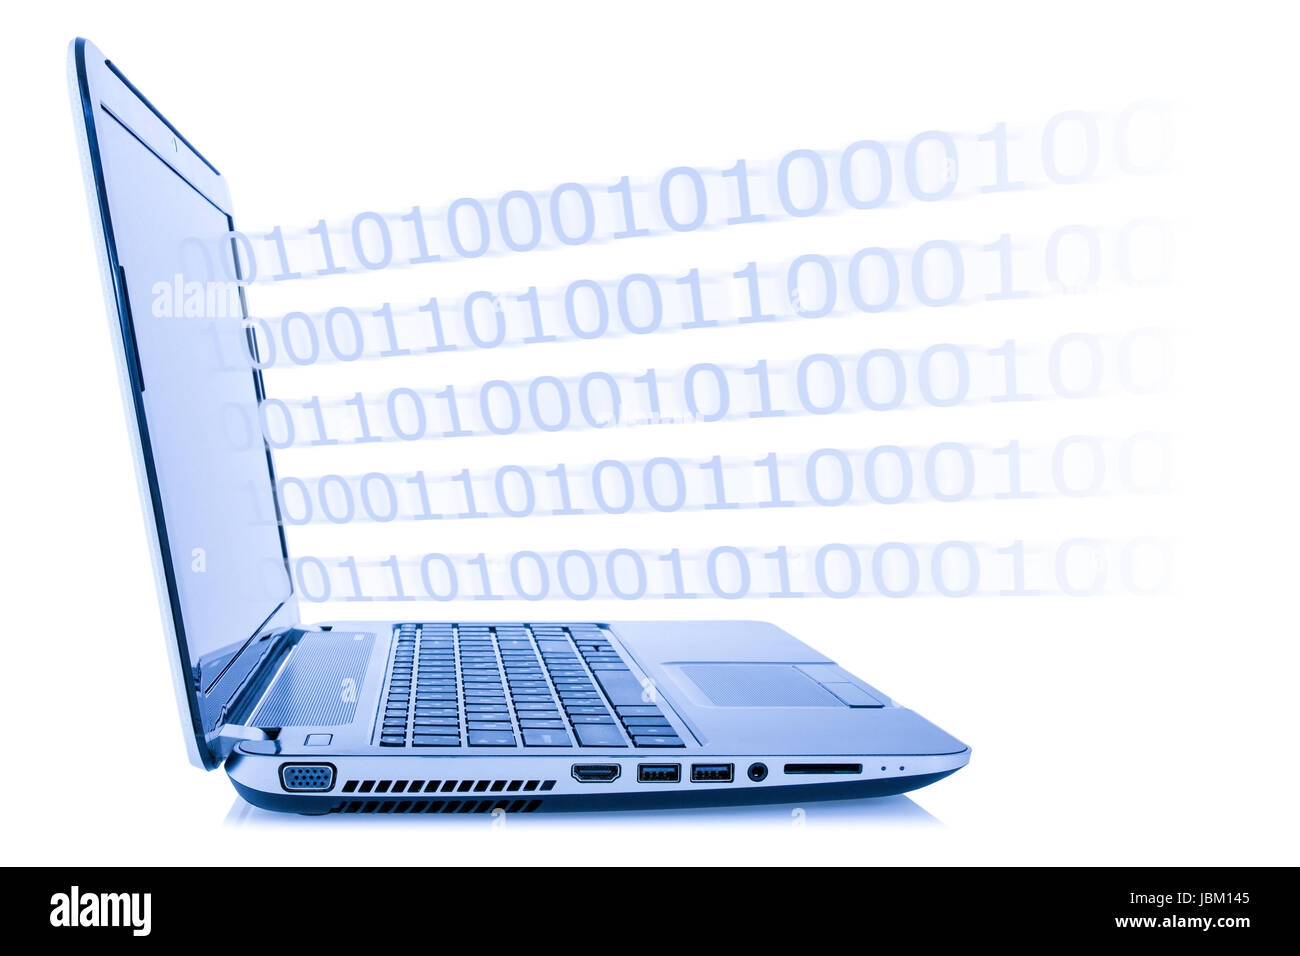 Computer technology concept. Program code coming out from laptop, isolated on white background - Stock Image